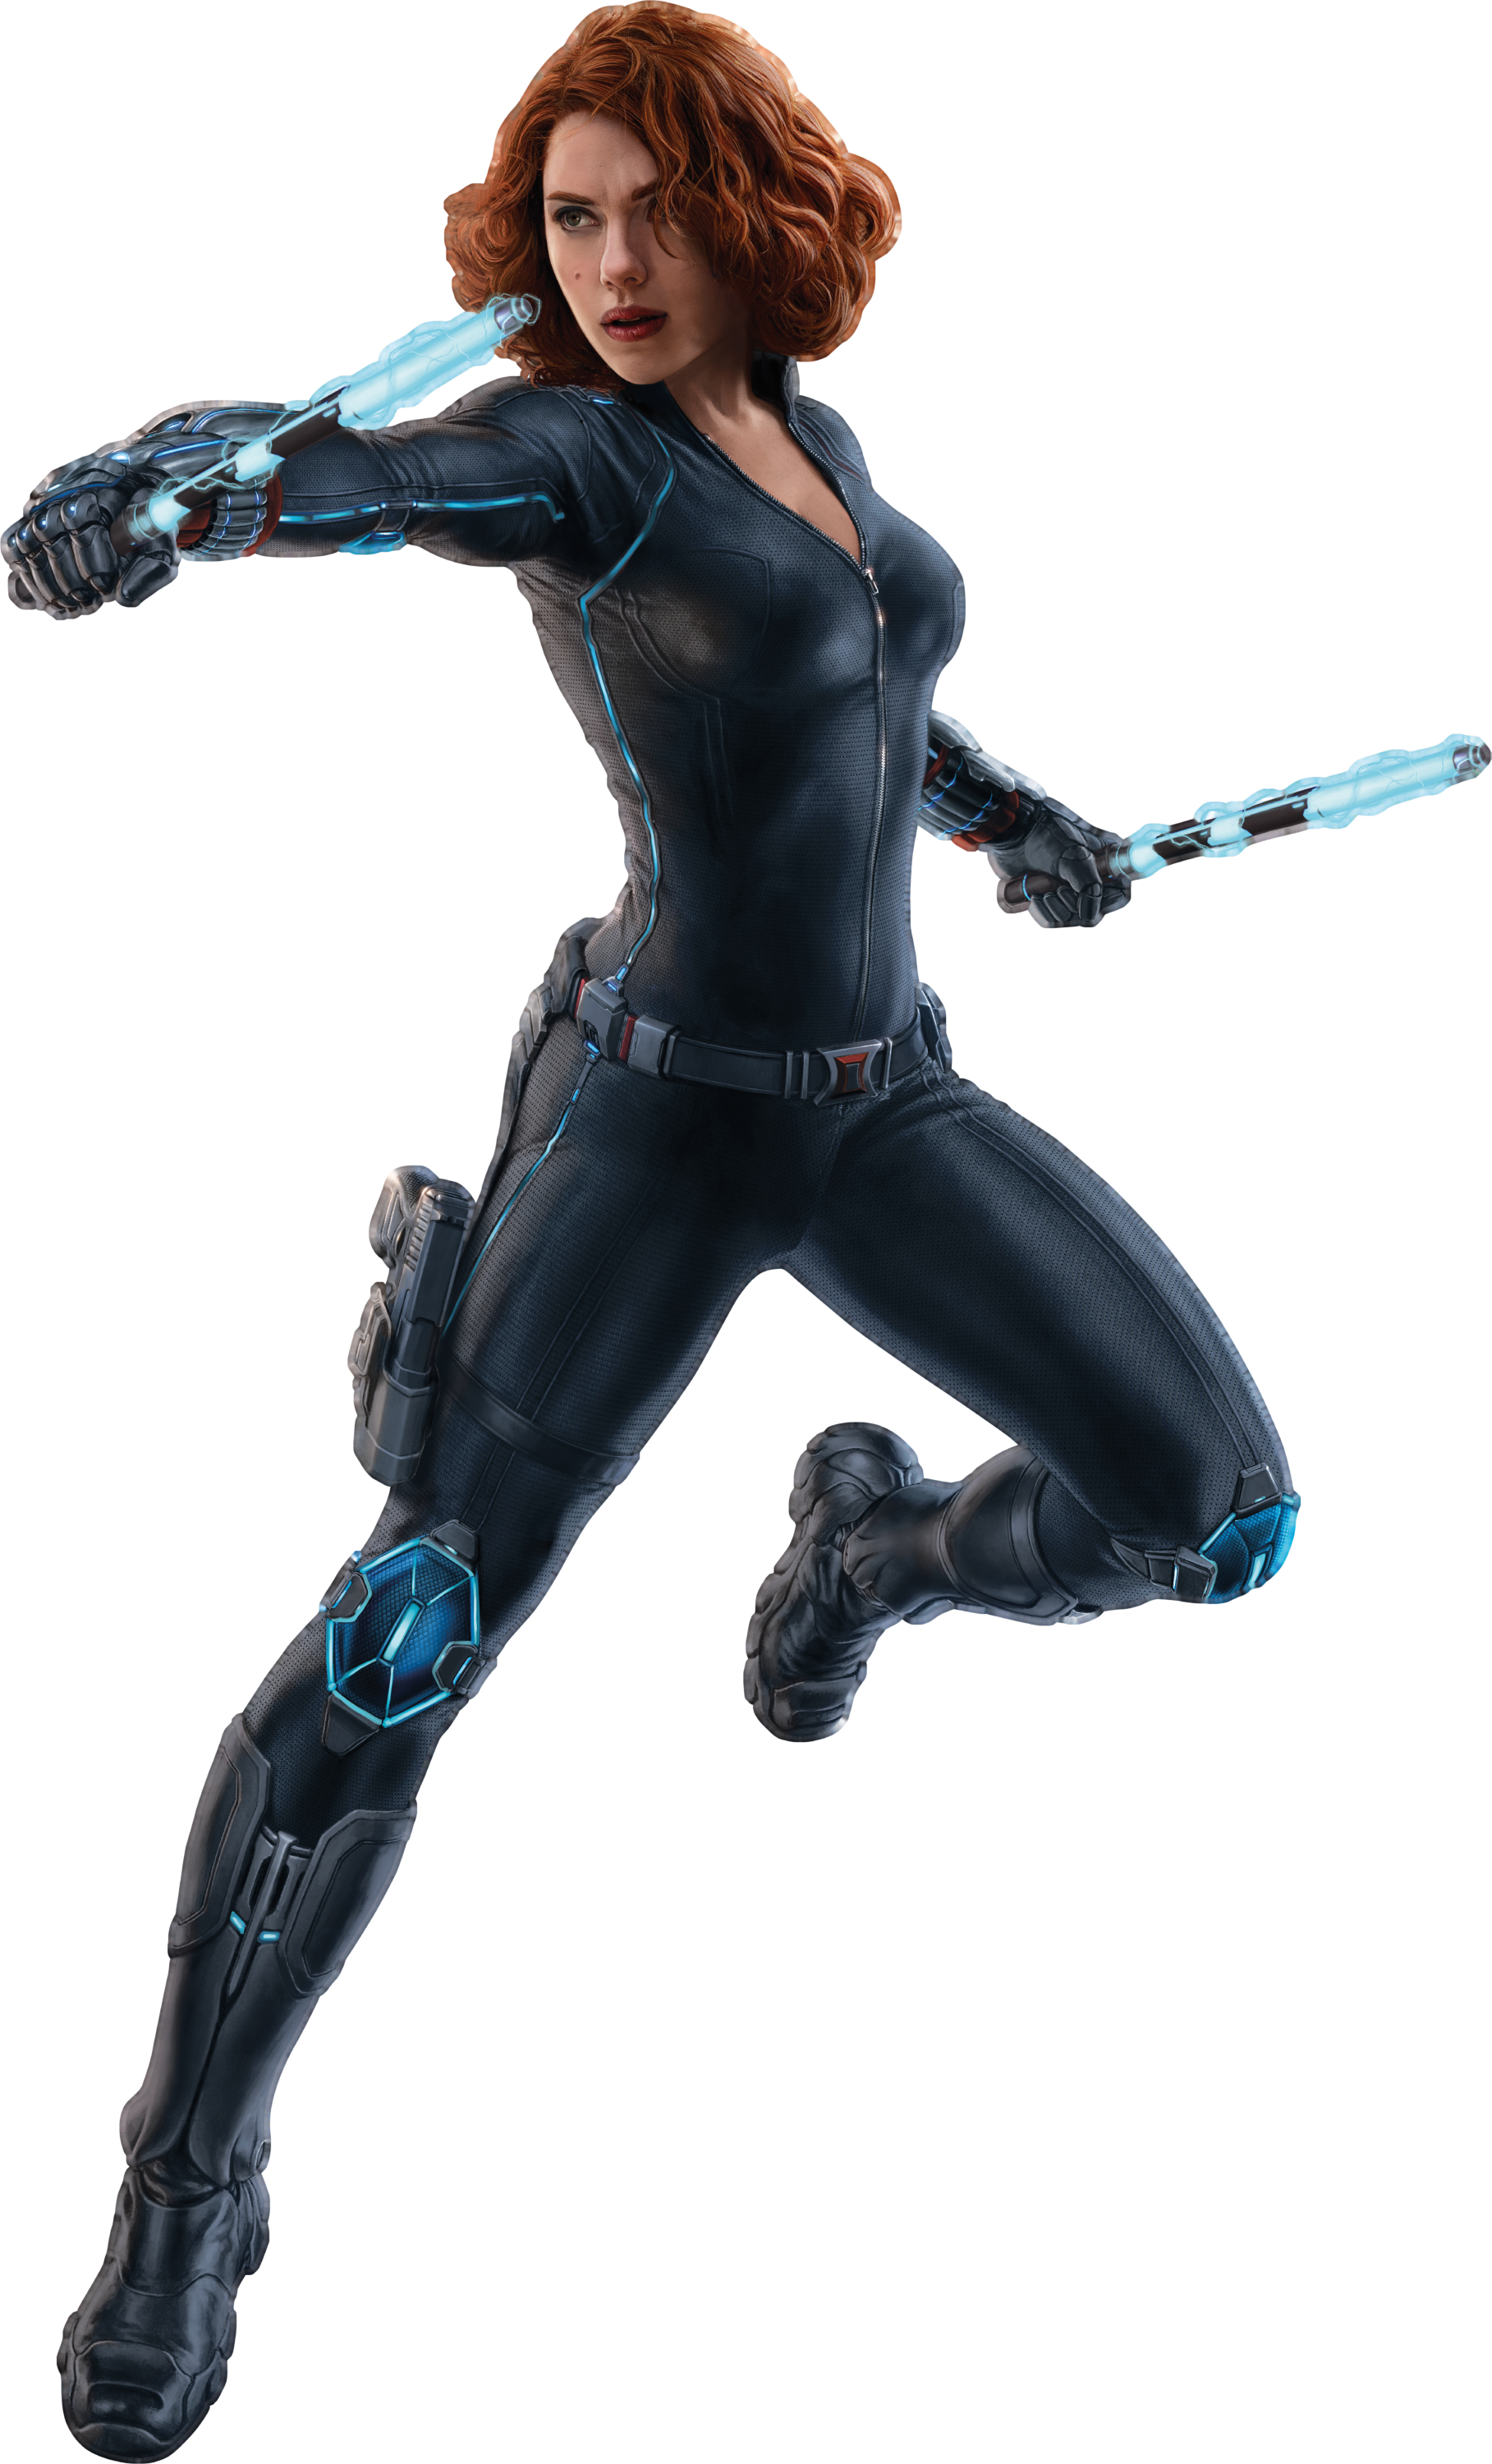 Black-Widow-AOU-Render.png - Mystique HD PNG